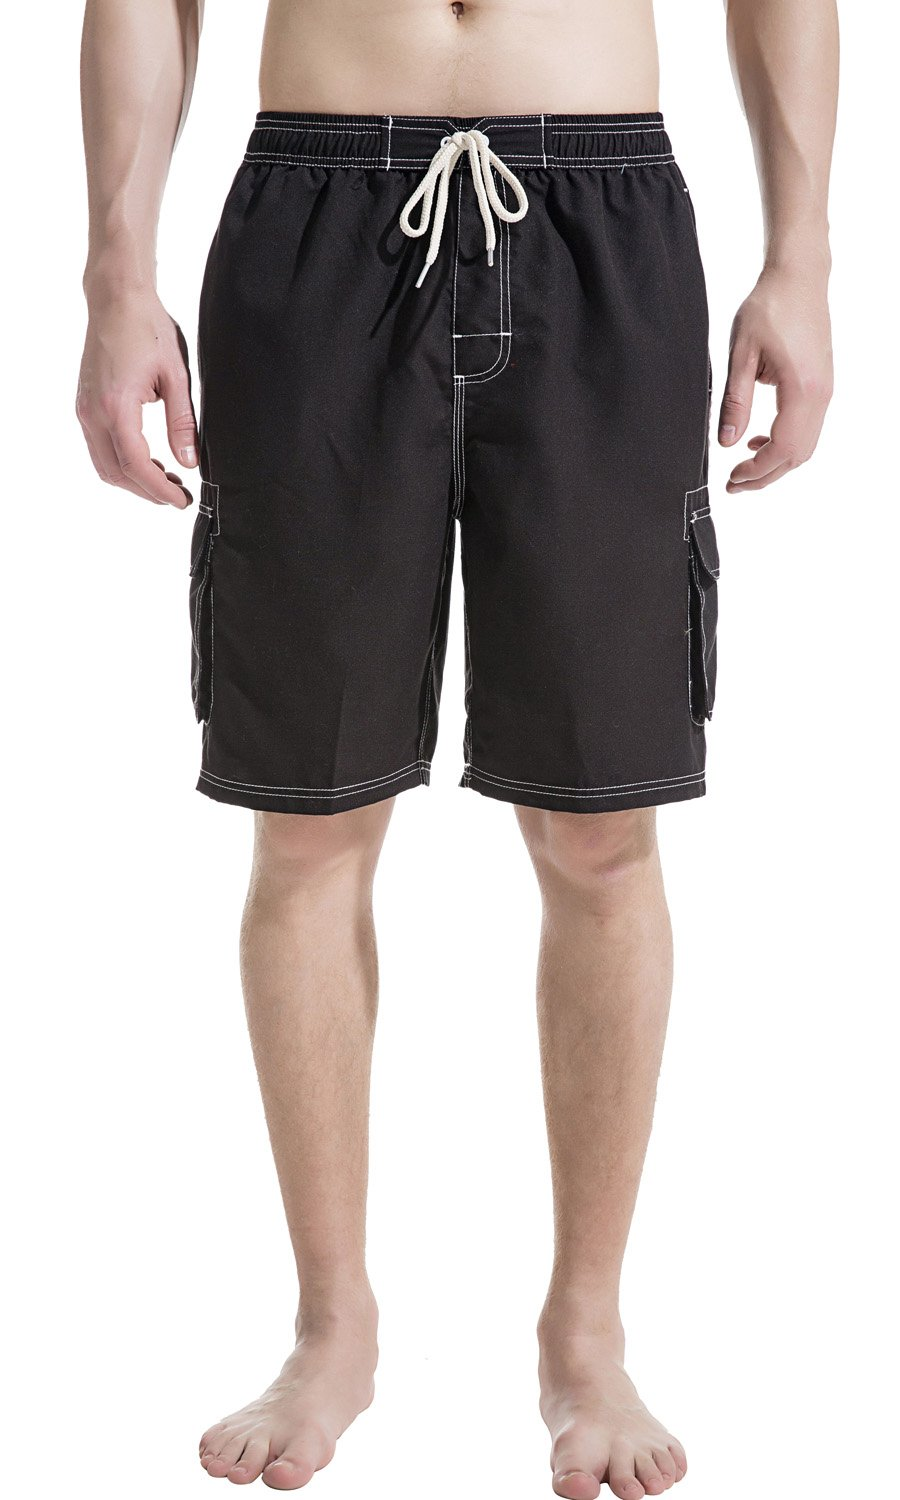 2a0a8cbc9c Akula Mens Beach Board Shorts Swim Trunks with Cargo Pockets product image